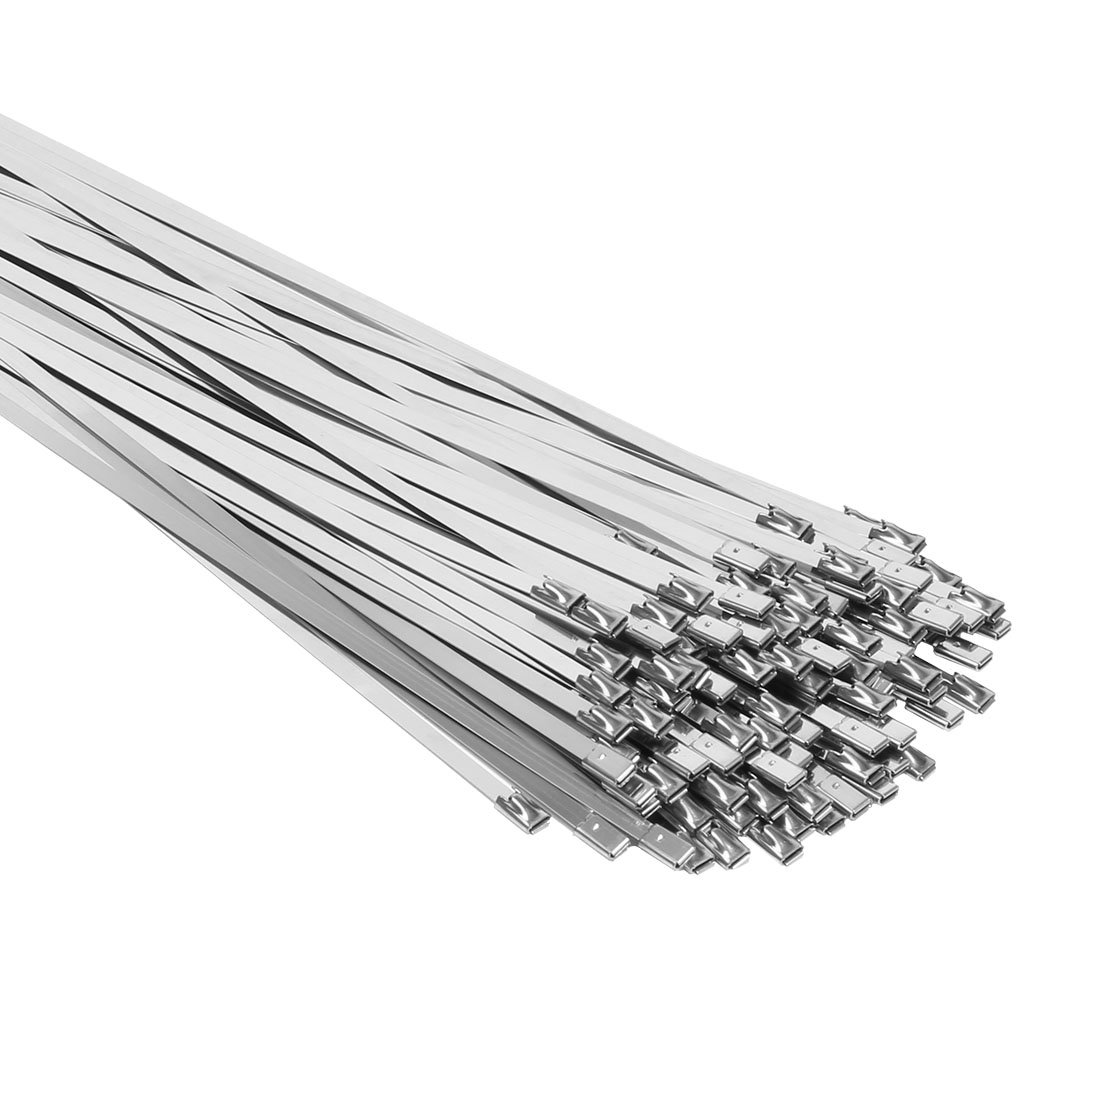 uxcell 100pcs 15.7 Inches Stainless Steel Exhaust Wrap Coated Locking Cable Zip Ties a16091300ux1047